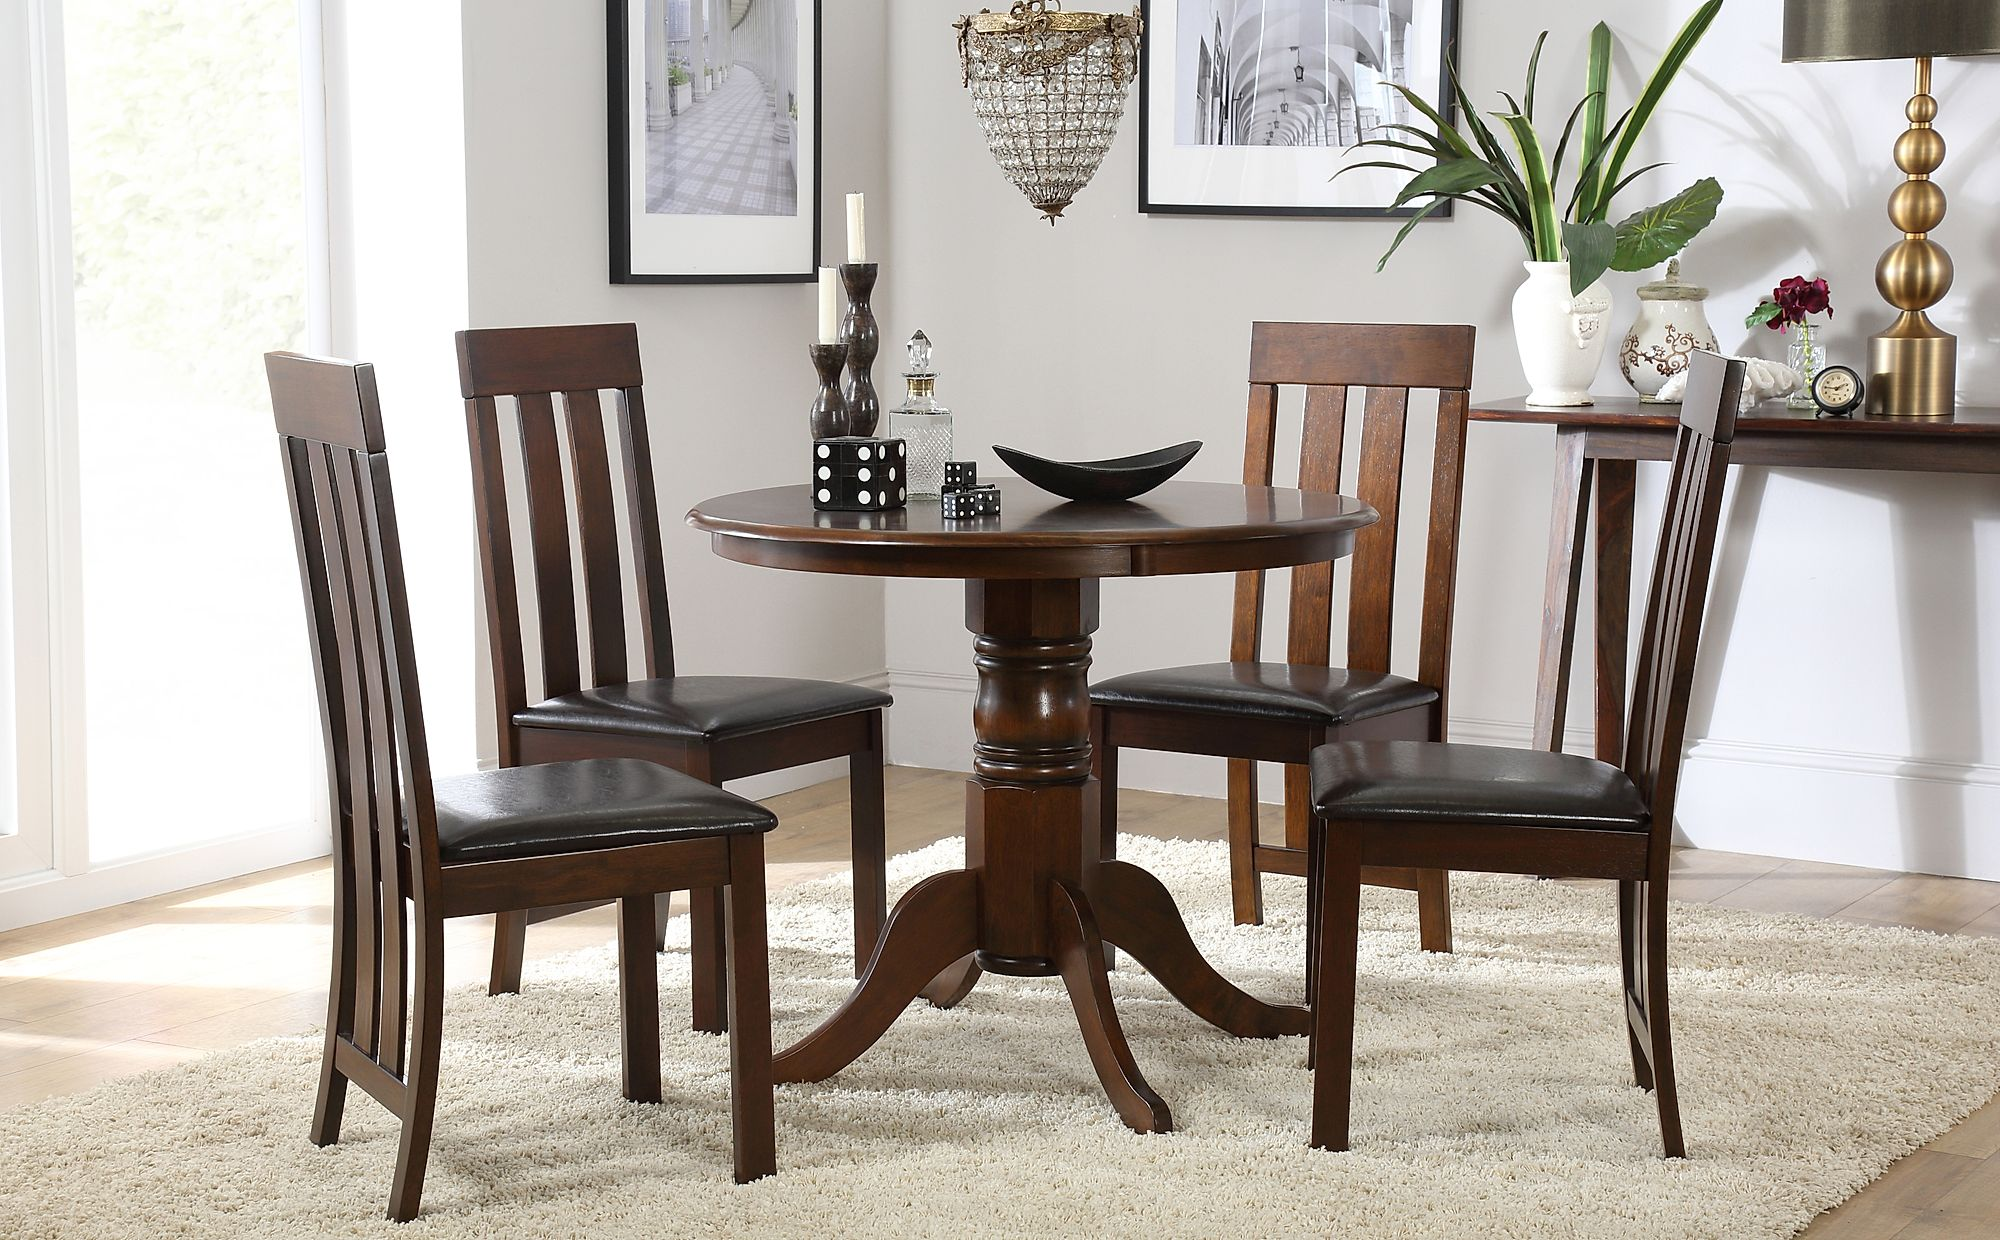 Kingston Round Dark Wood Dining Table With 4 Chester